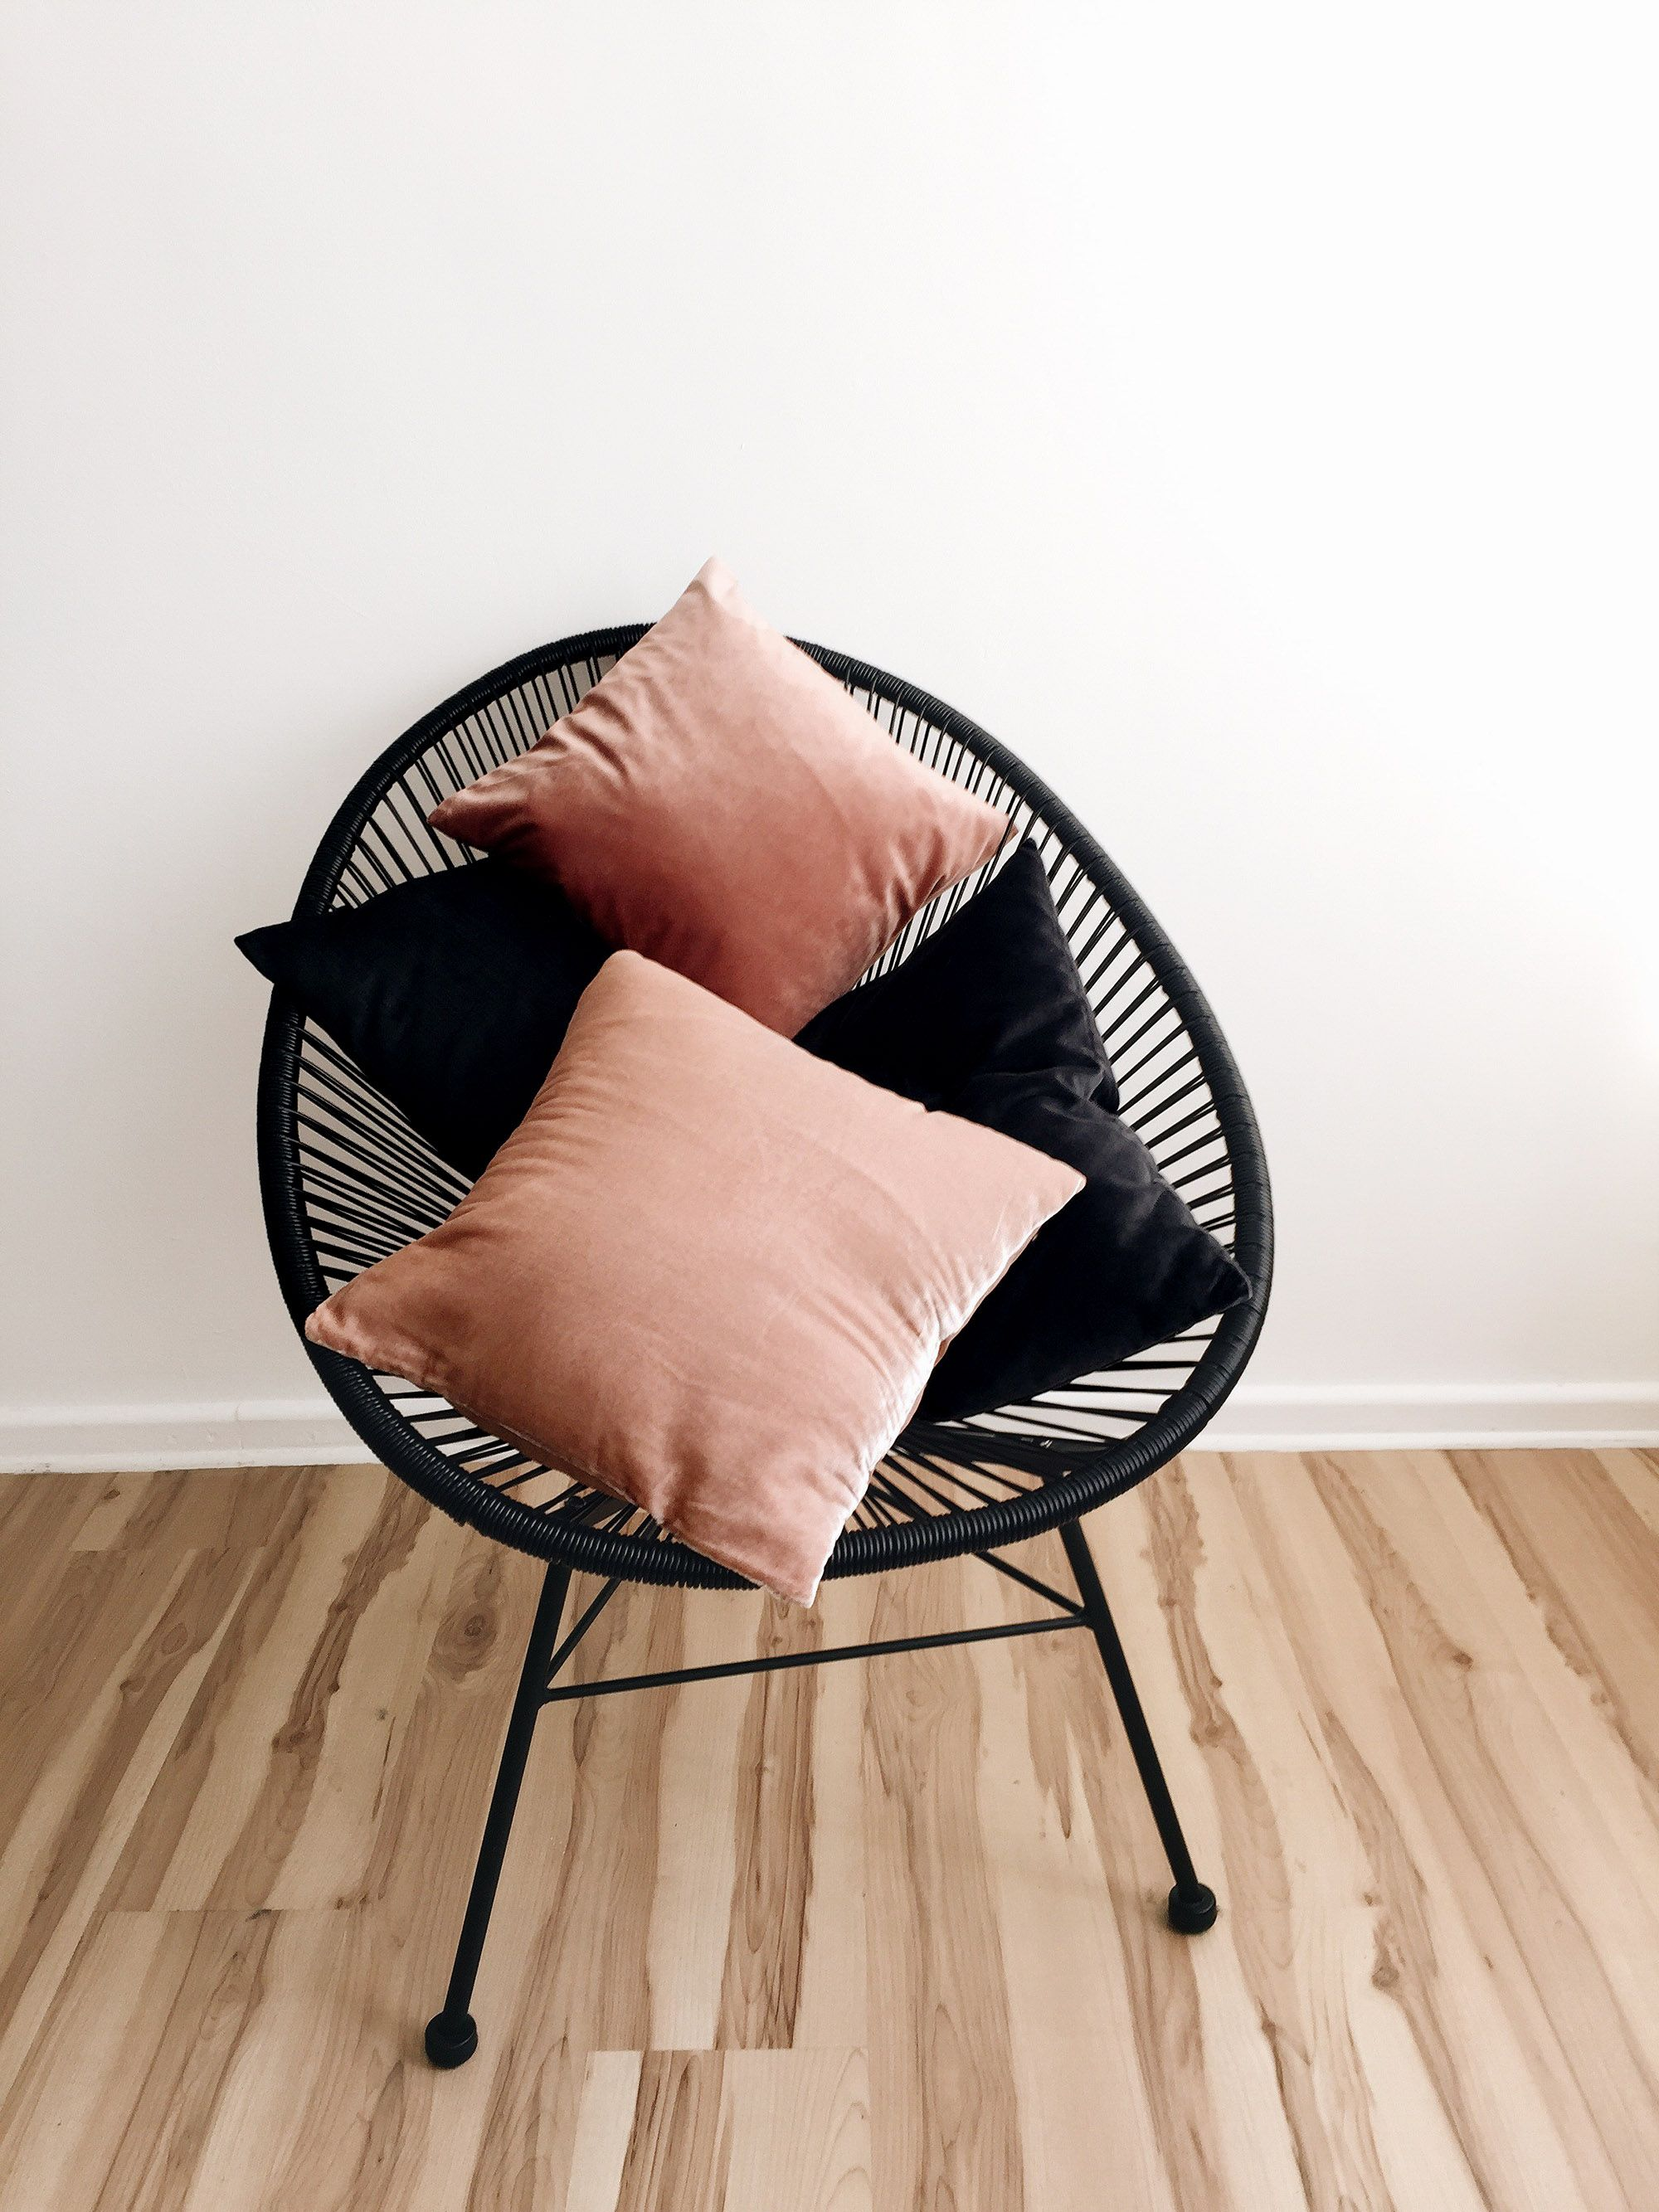 Interior Post From Www Schwarzersamt Com With Maison Du Monde Side Table Blush Velvet Pillows Puro Room Fragrance Acapu Chair Blush Interiors Acapulco Chair